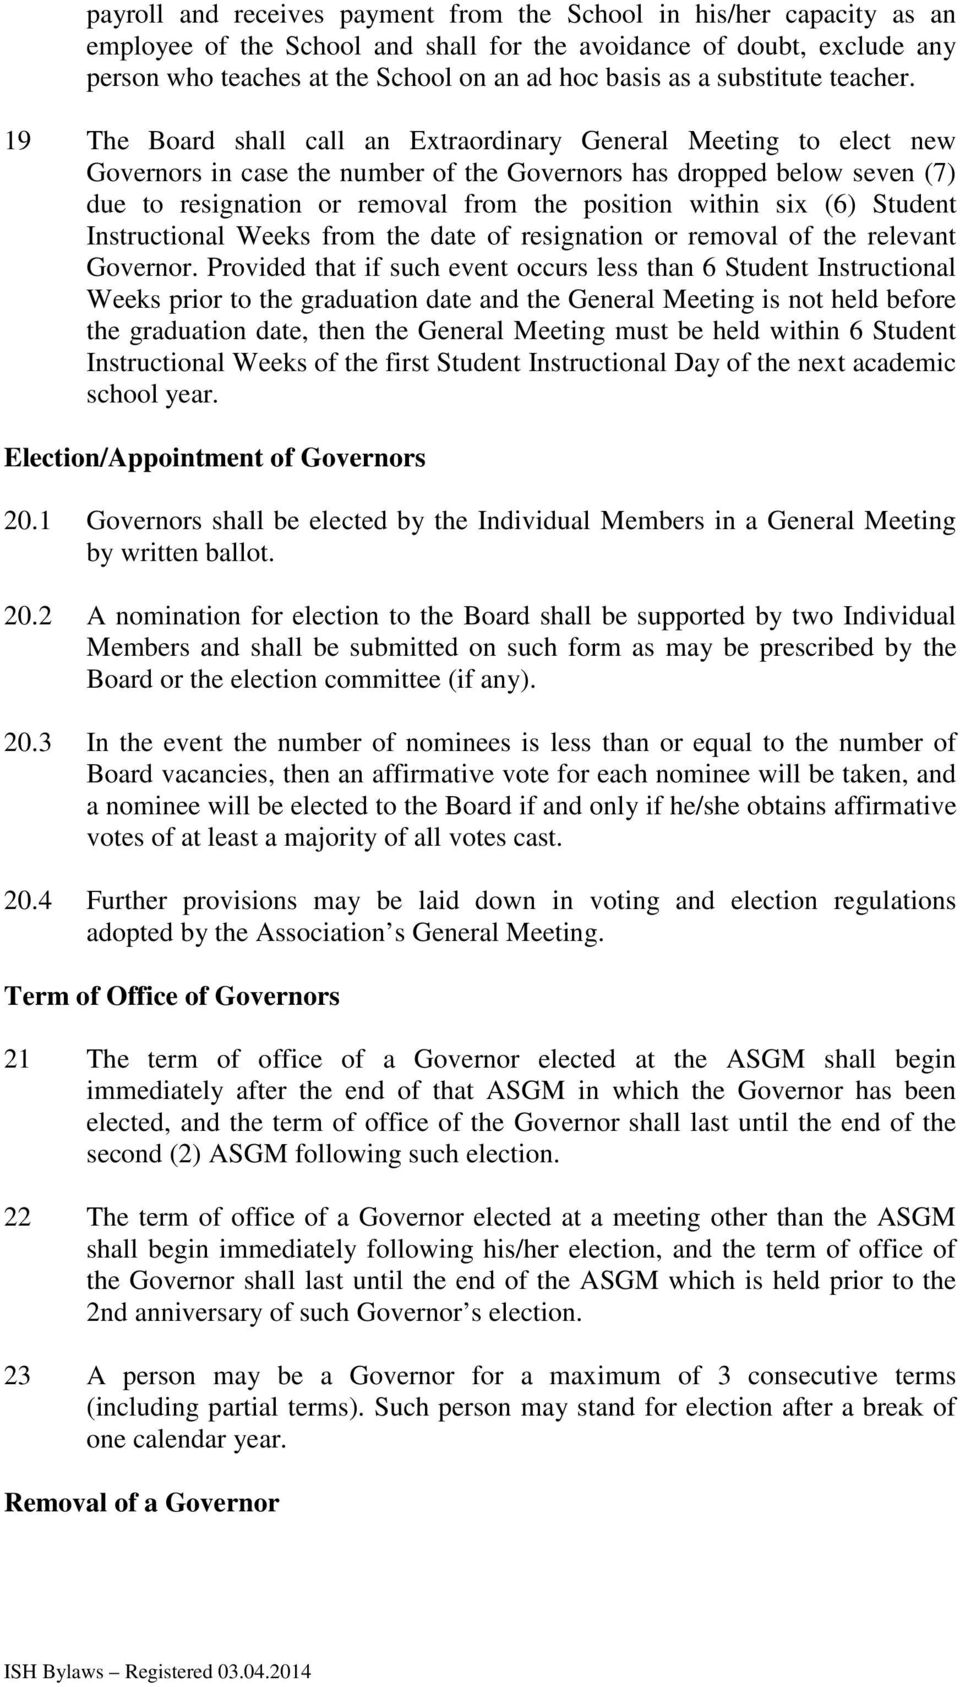 19 The Board shall call an Extraordinary General Meeting to elect new Governors in case the number of the Governors has dropped below seven (7) due to resignation or removal from the position within